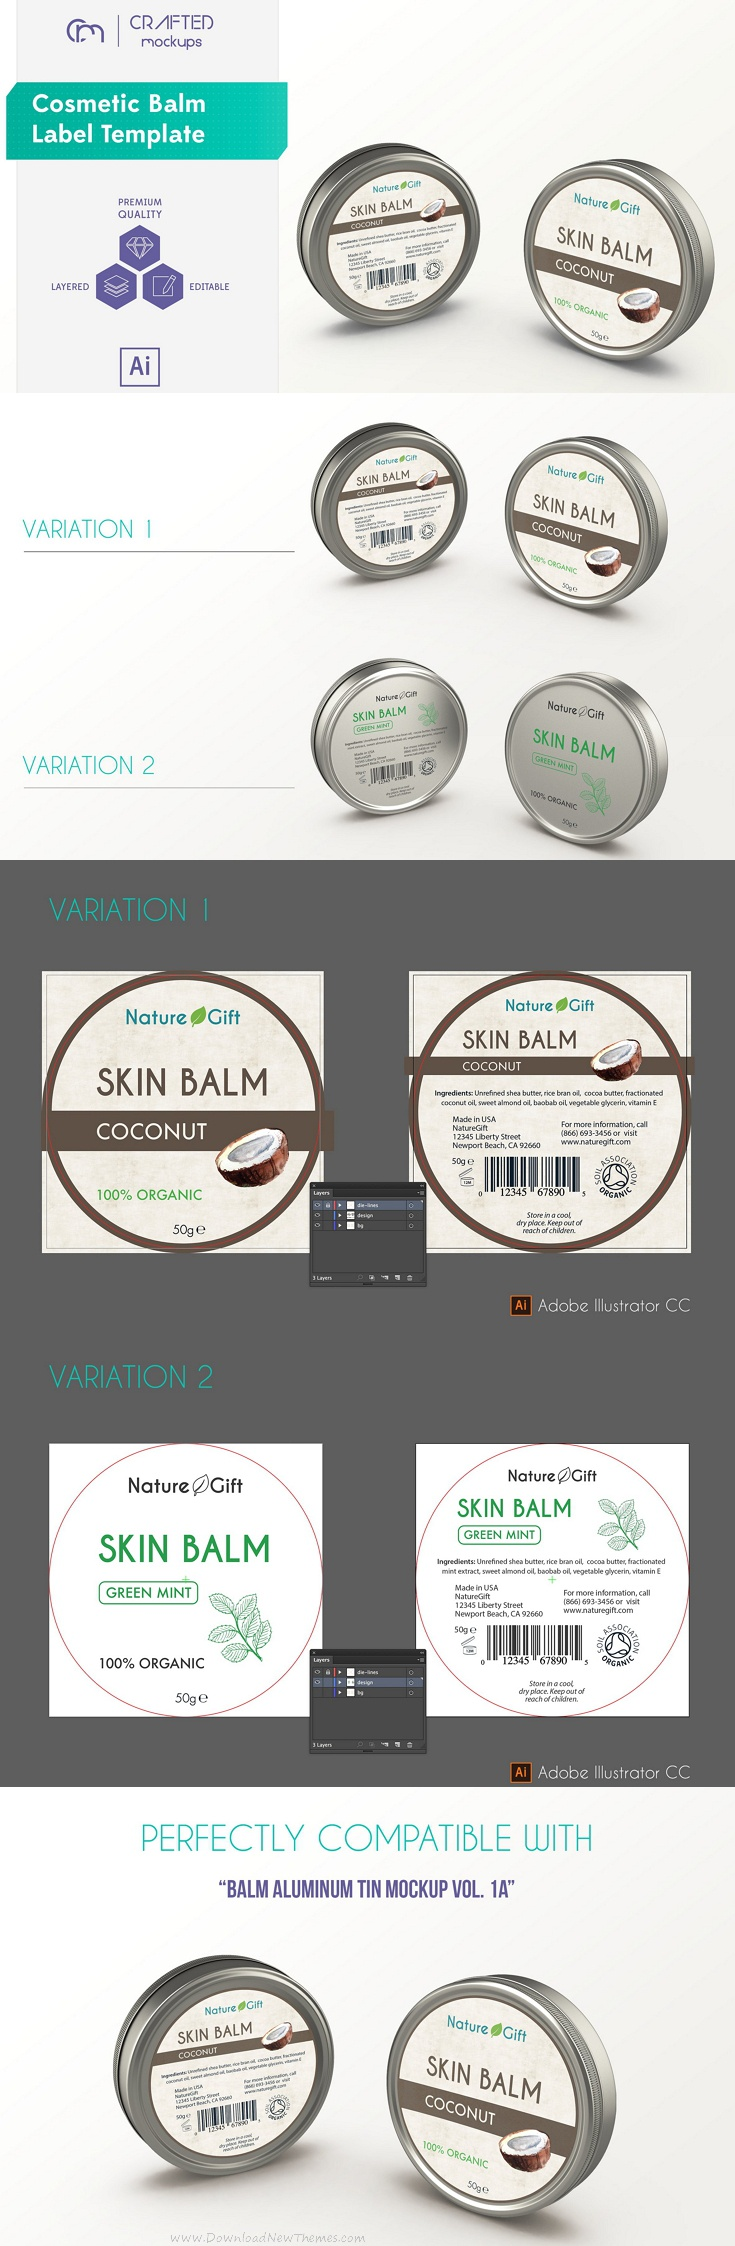 Cosmetic Balm #Label Template #mockup #graphics #design #free for ...